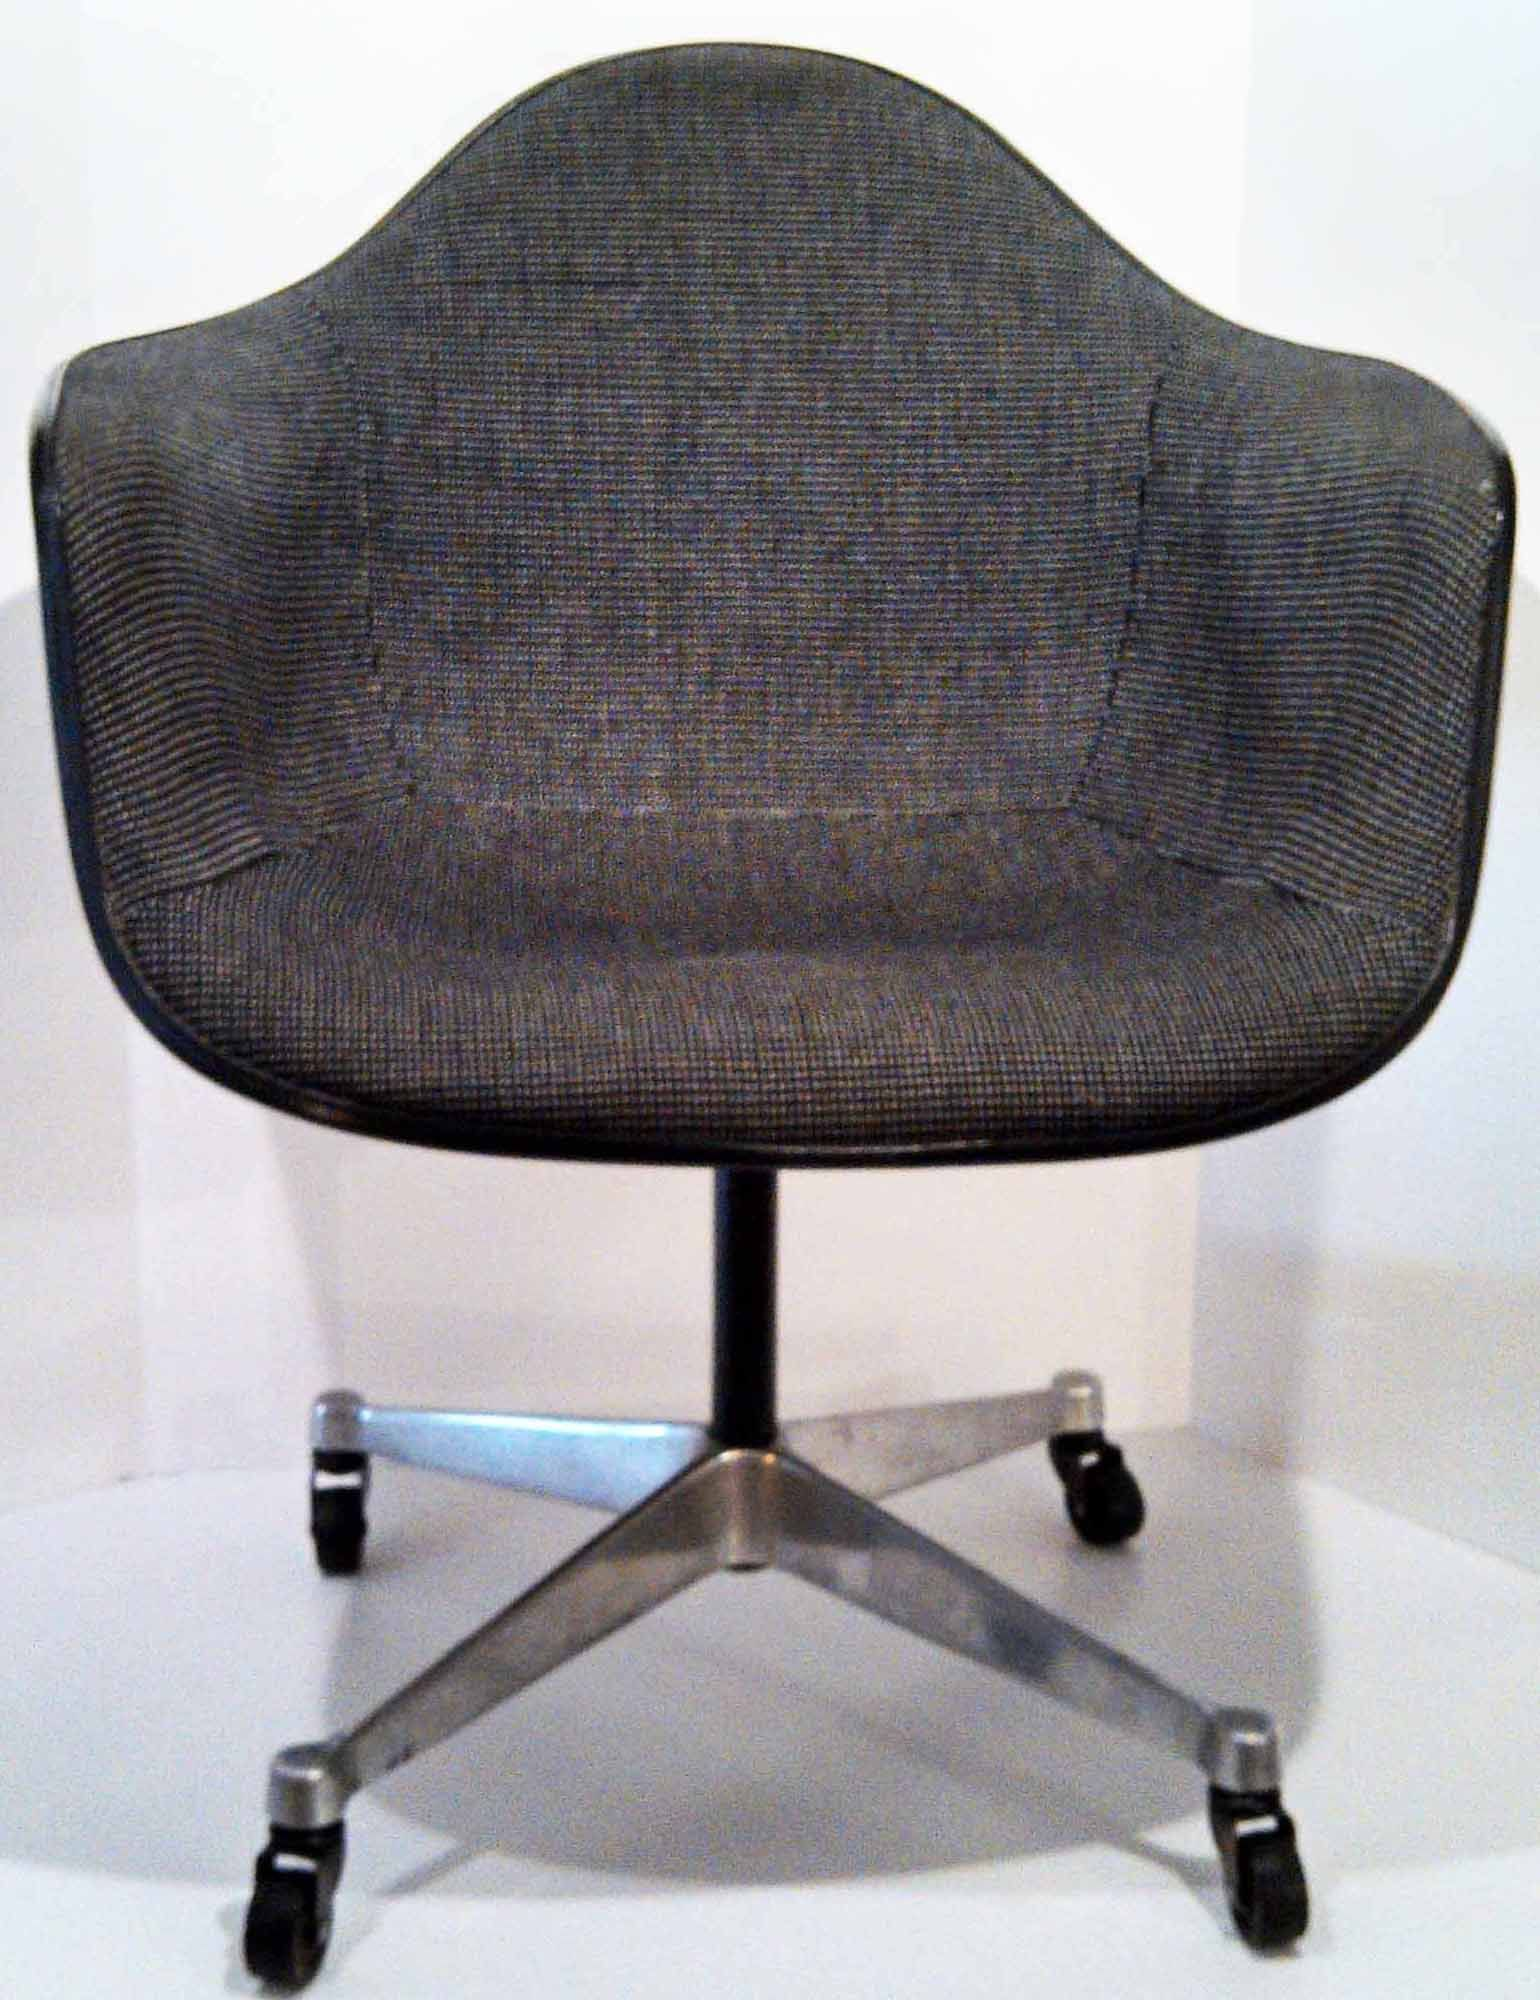 Fiberglass Shell Chair Tantra Plans Charles Eames Design Produced By Herman Miller Upholstered Cover Alexander Girard Aluminum Base With Castors And Swivels